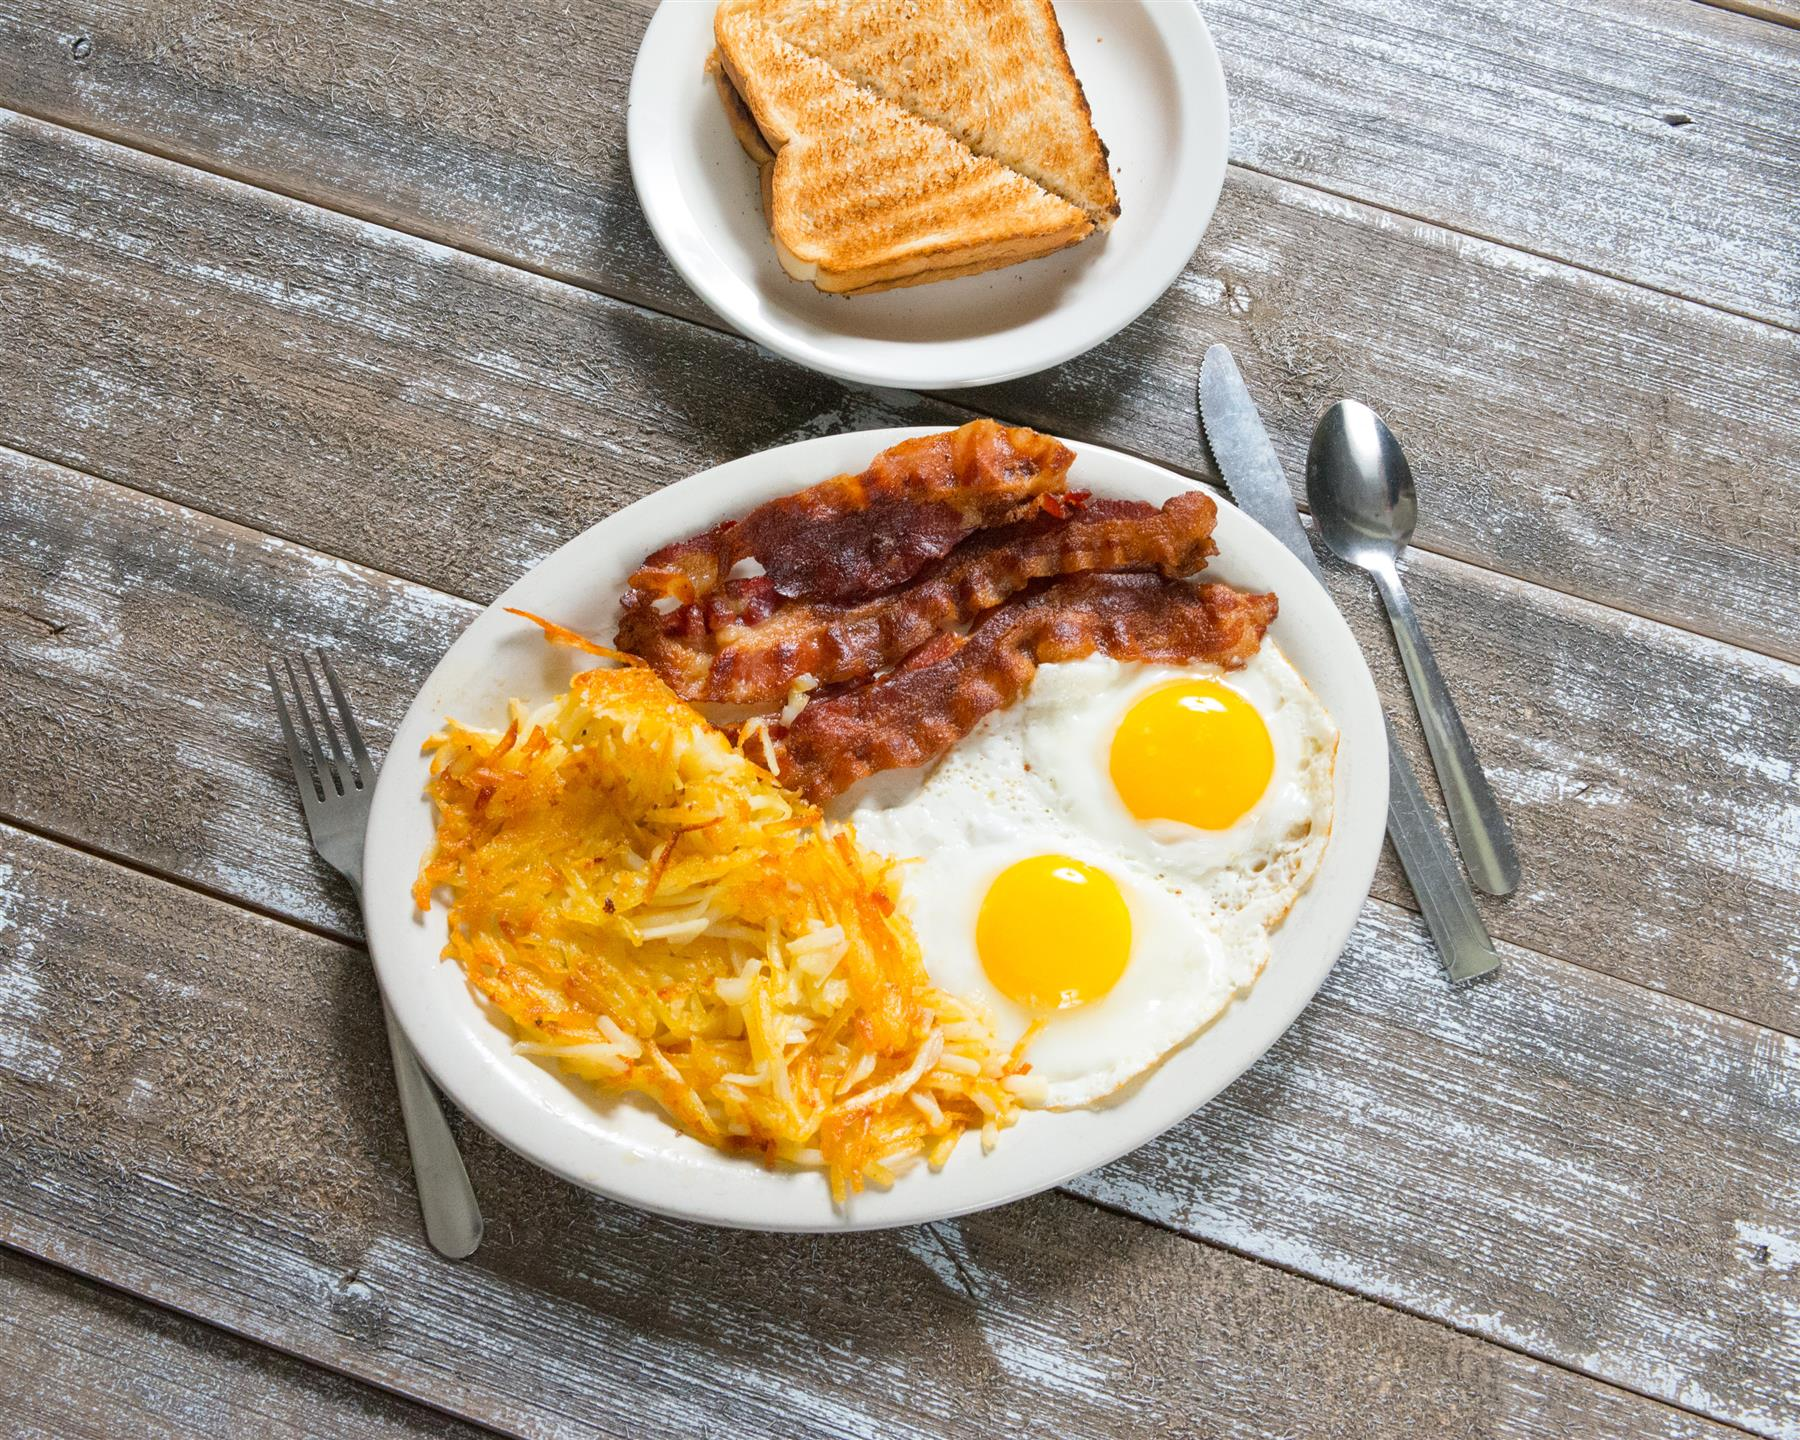 eggs, bacon, hasbrowns and toast